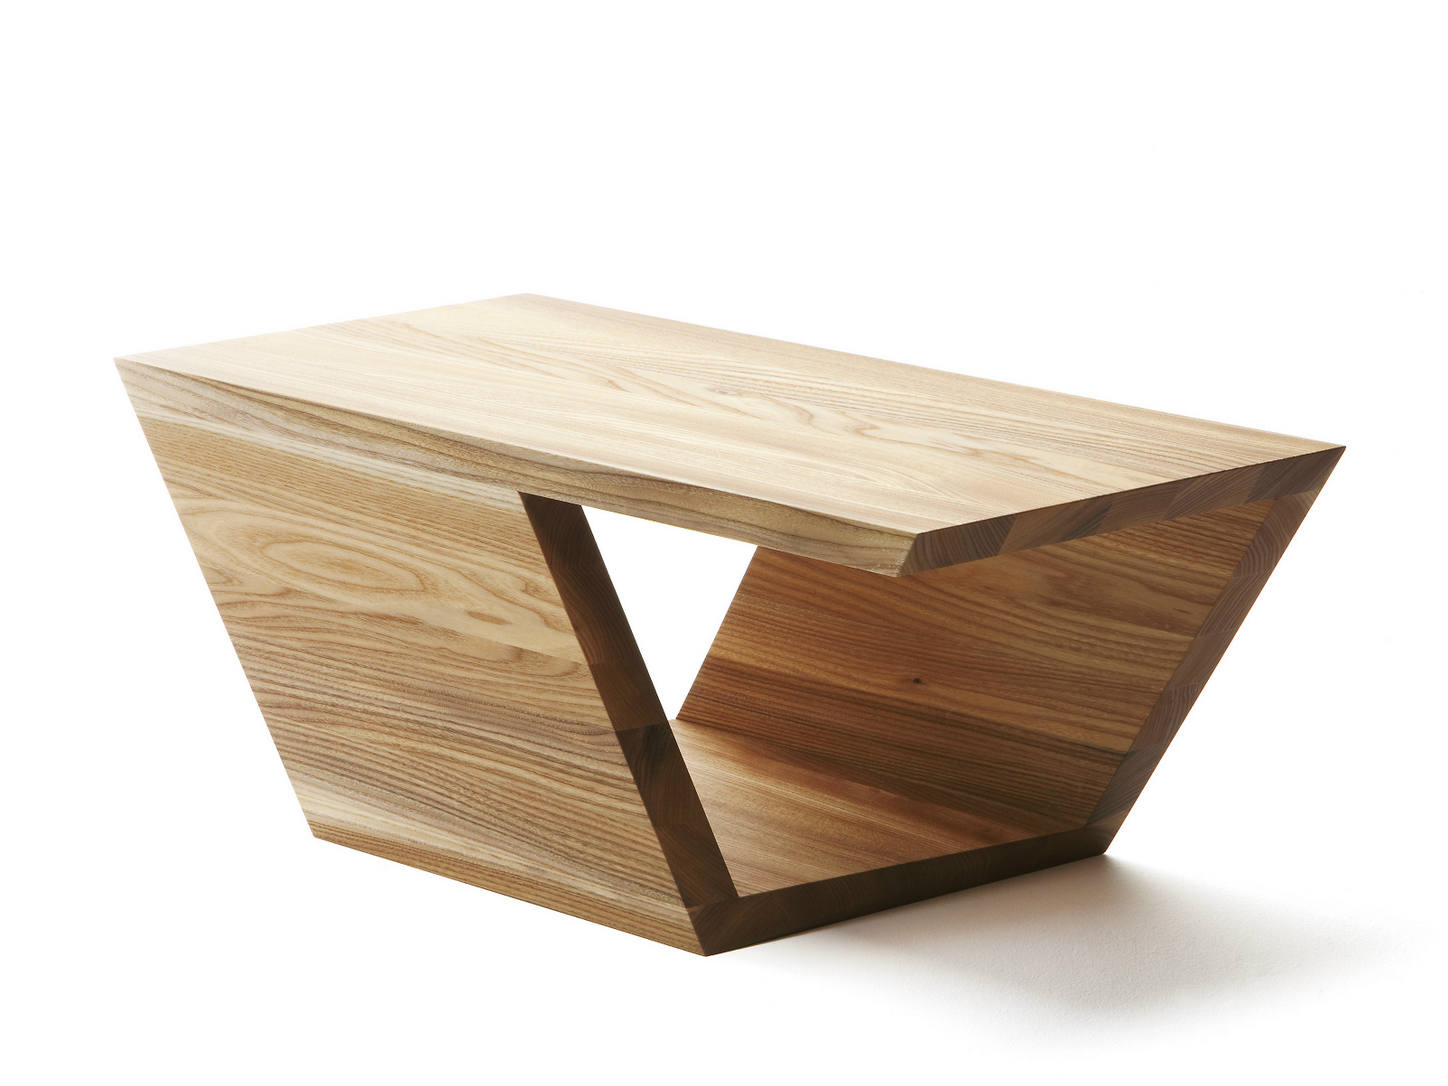 Low Rectangular Elm Coffee Table Guangdong Study By Nikari Design Gdut University